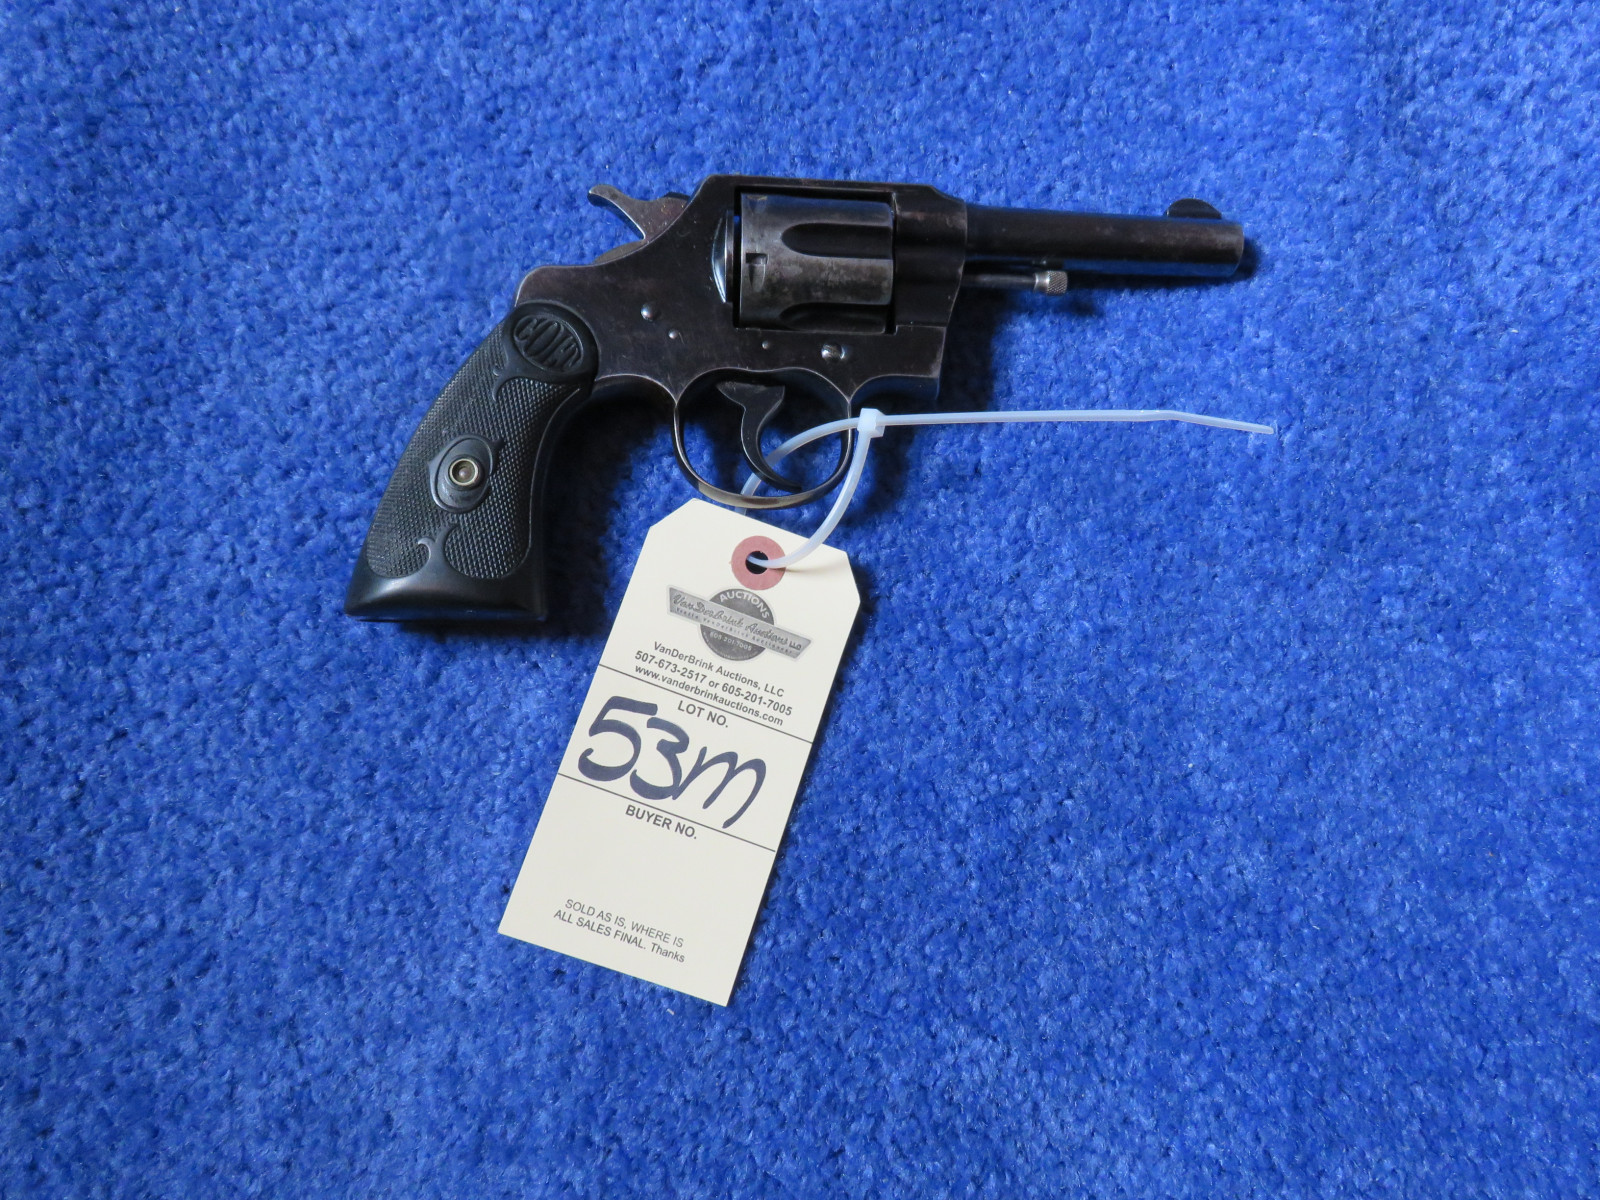 Colt Army Special .32 WCF Handgun - Image 3